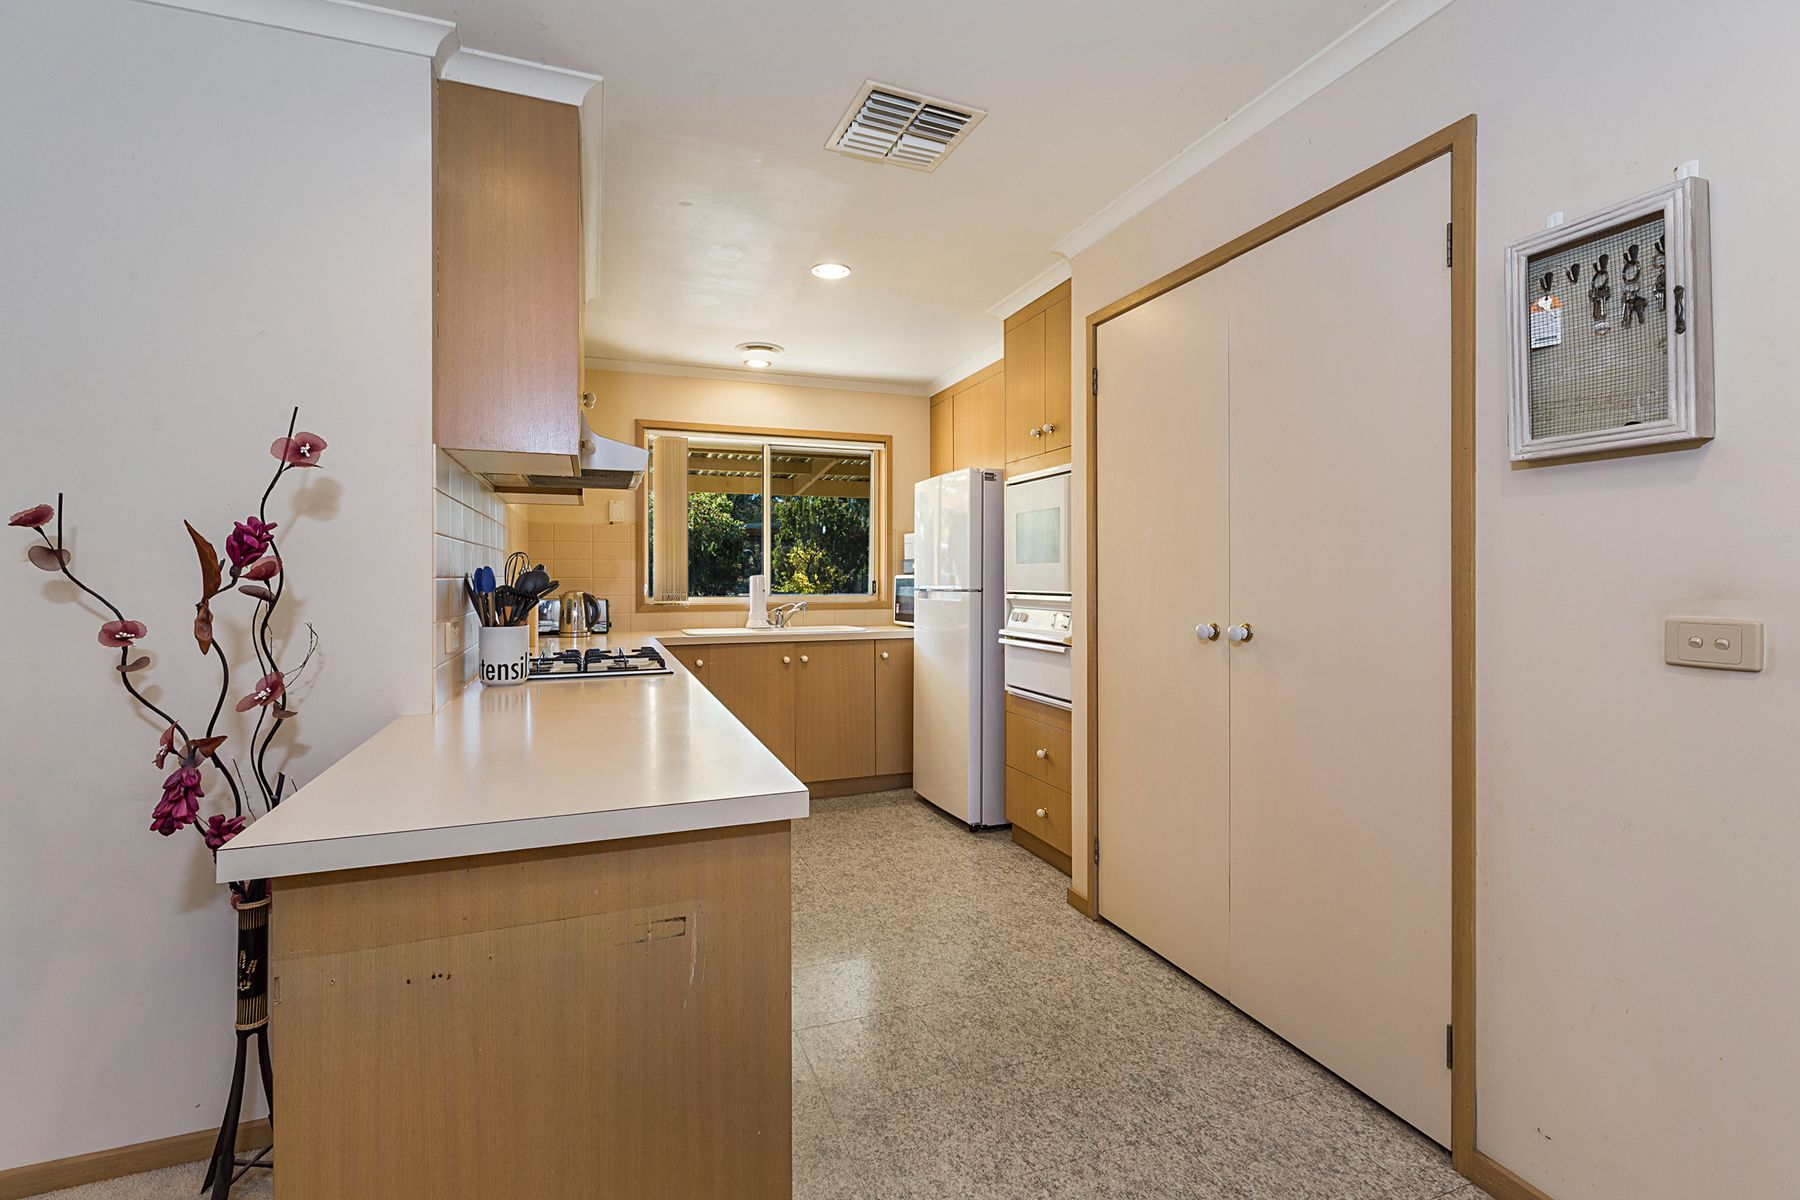 1/10 Patricia Court, Maiden Gully, VIC 3551